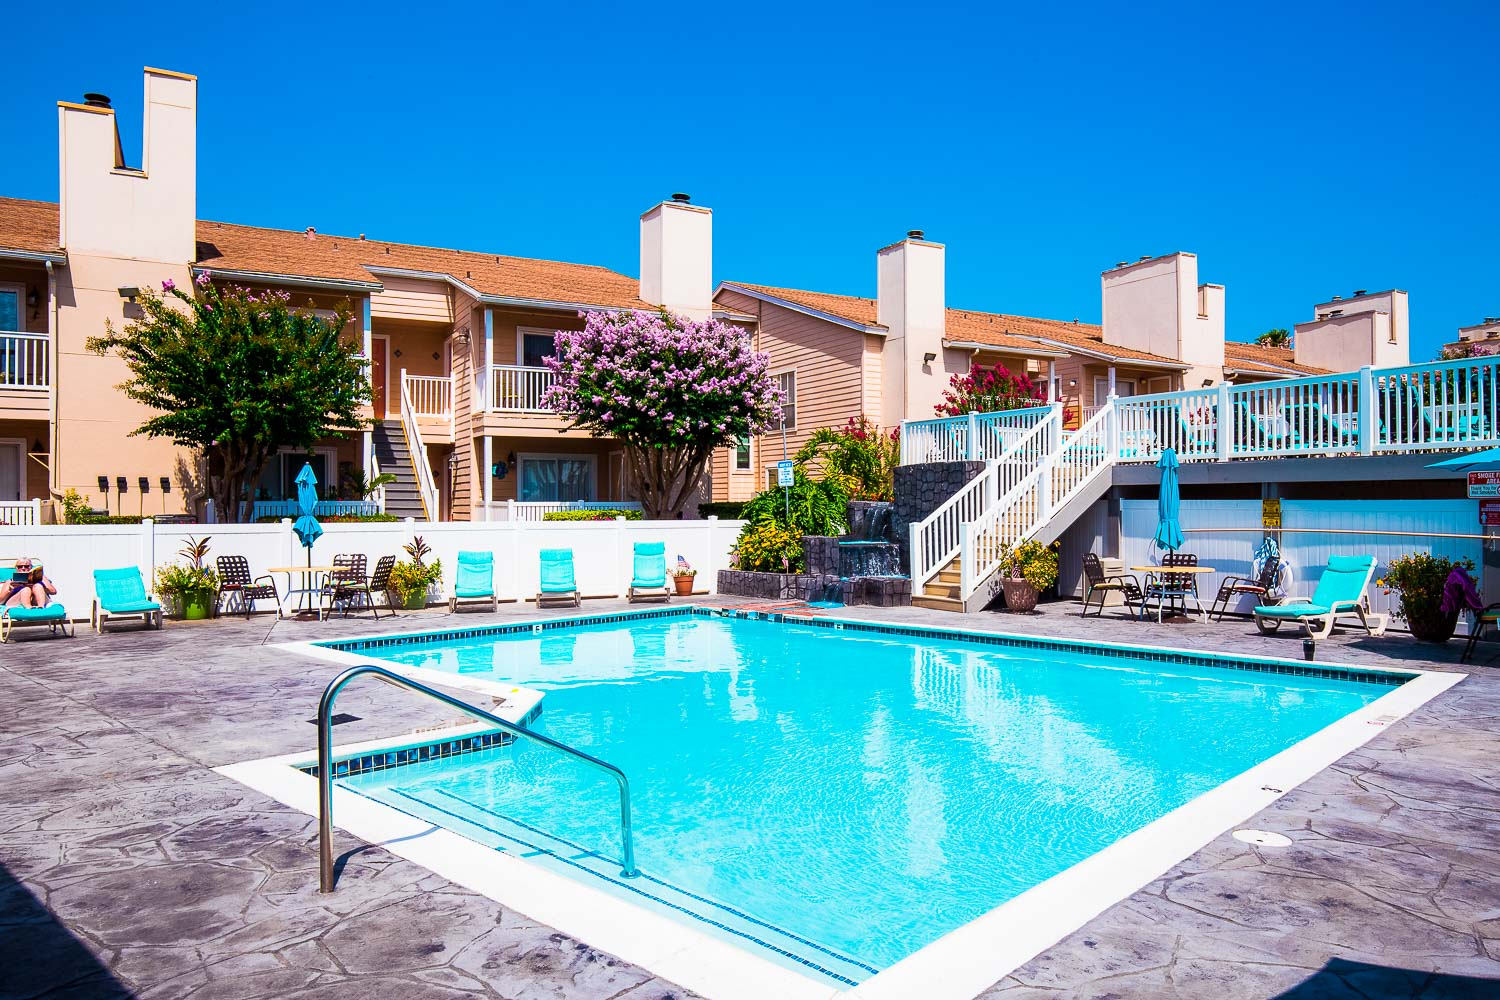 Galveston Texas vacation rental condo on seawall condo landscaping and view of pool, lounge chairs, and condo balconies